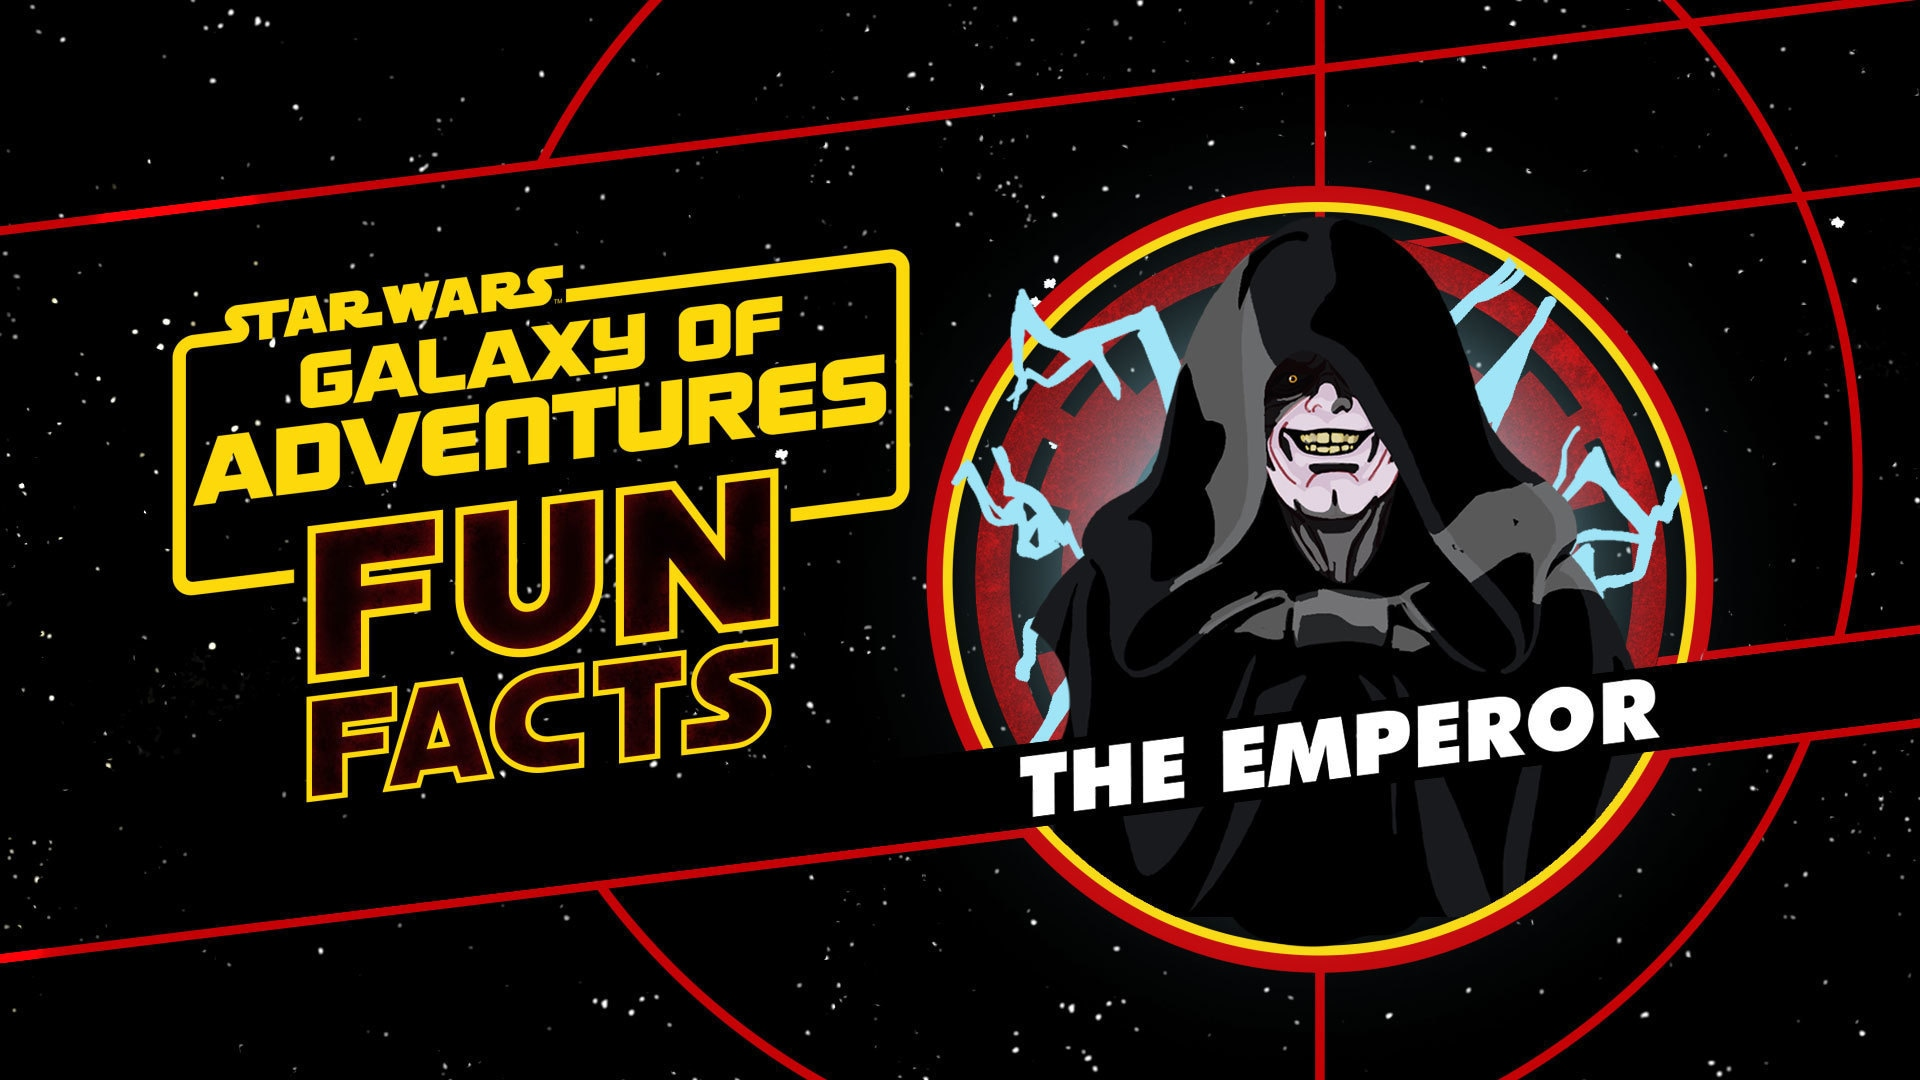 Emperor Palpatine | Star Wars Galaxy of Adventures Fun Facts